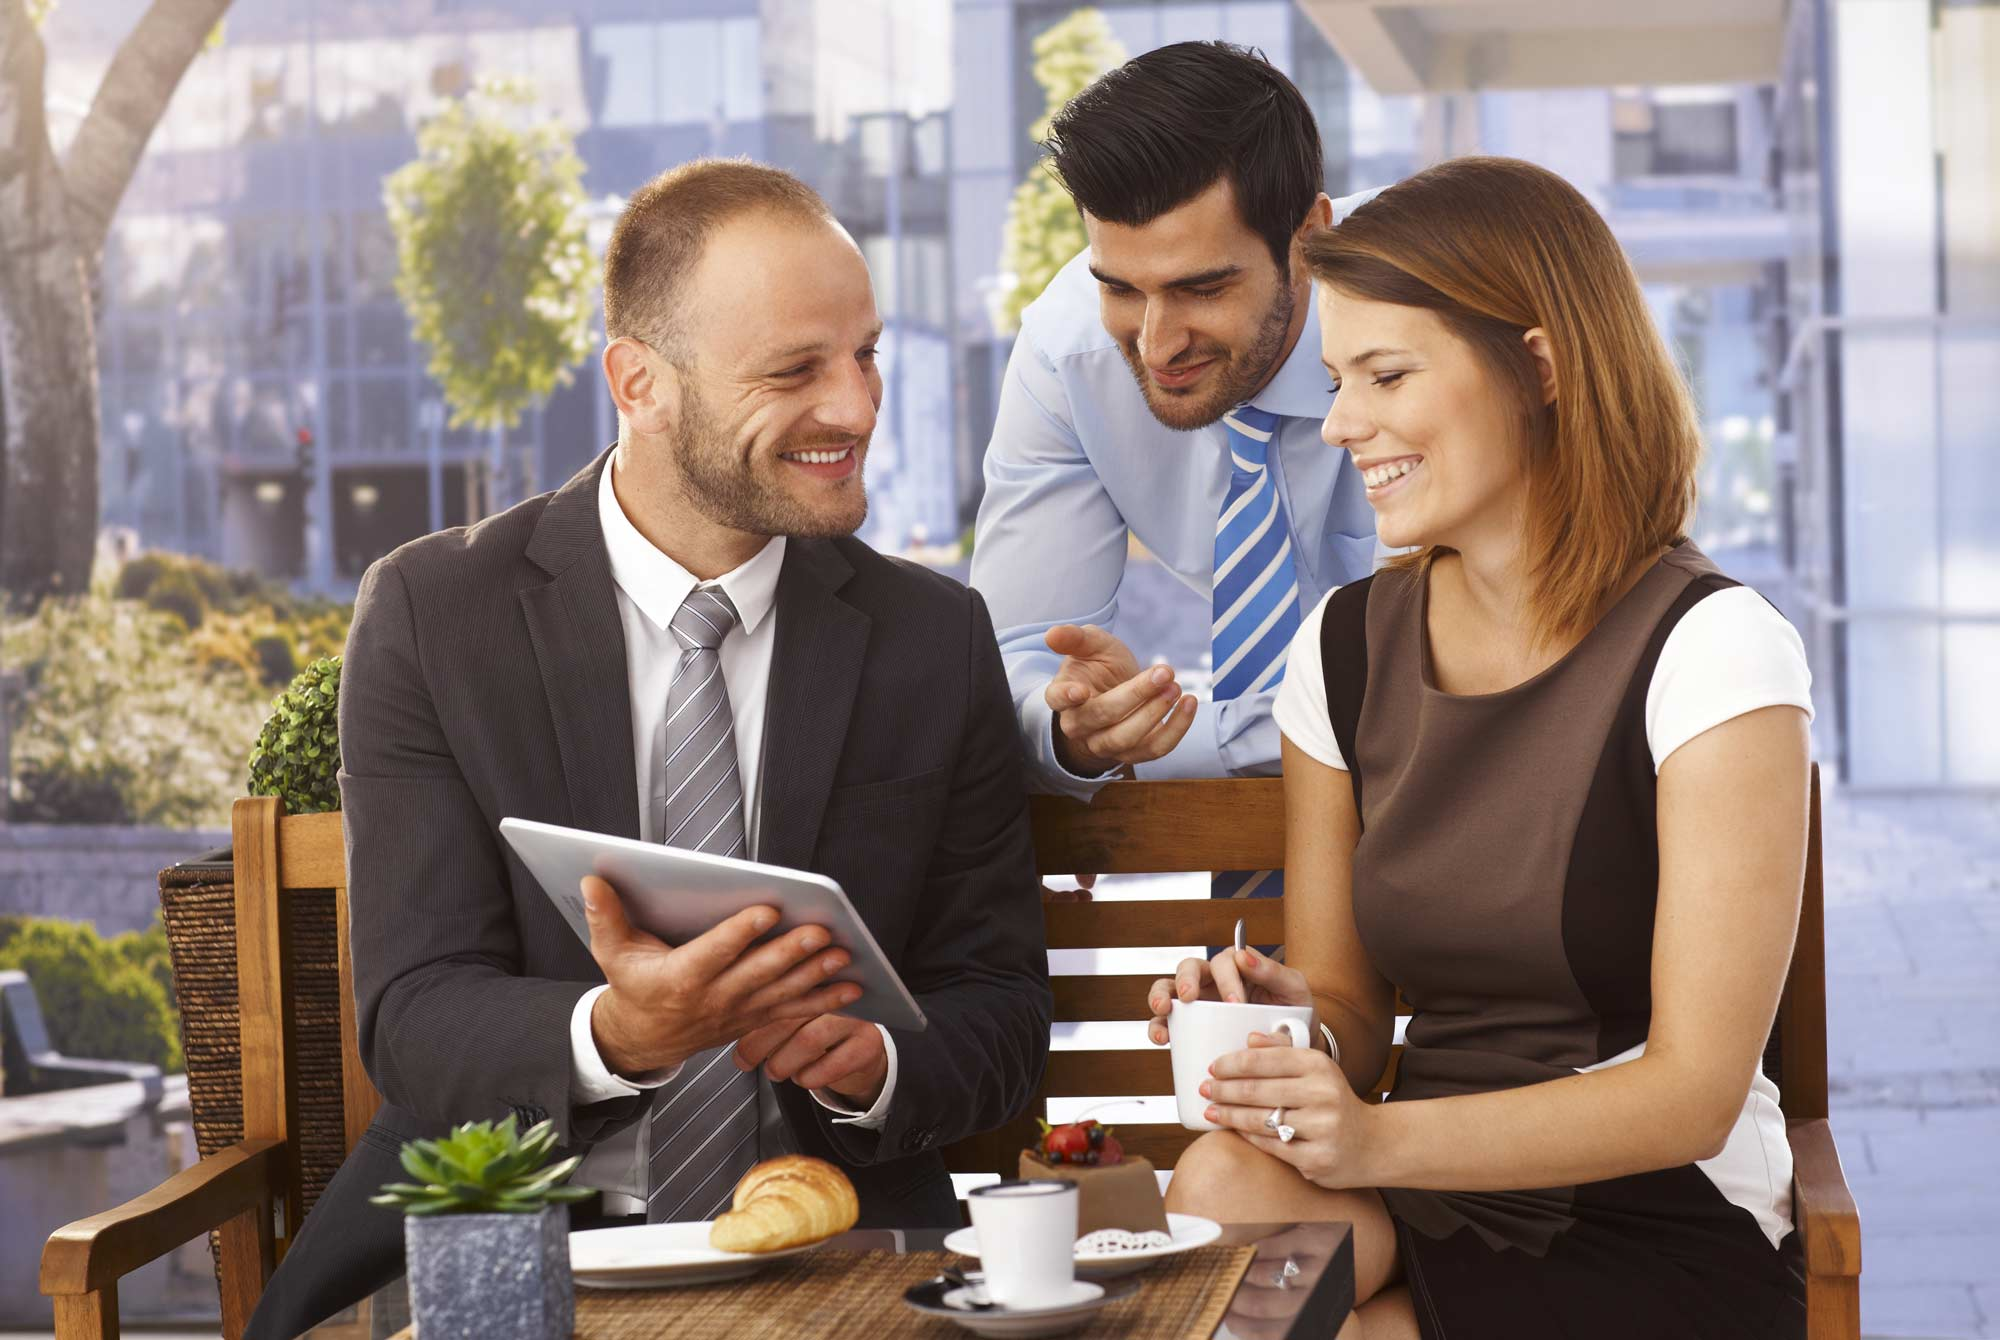 business-team-having-outdoor-meeting-using-tablet-39009572.jpg